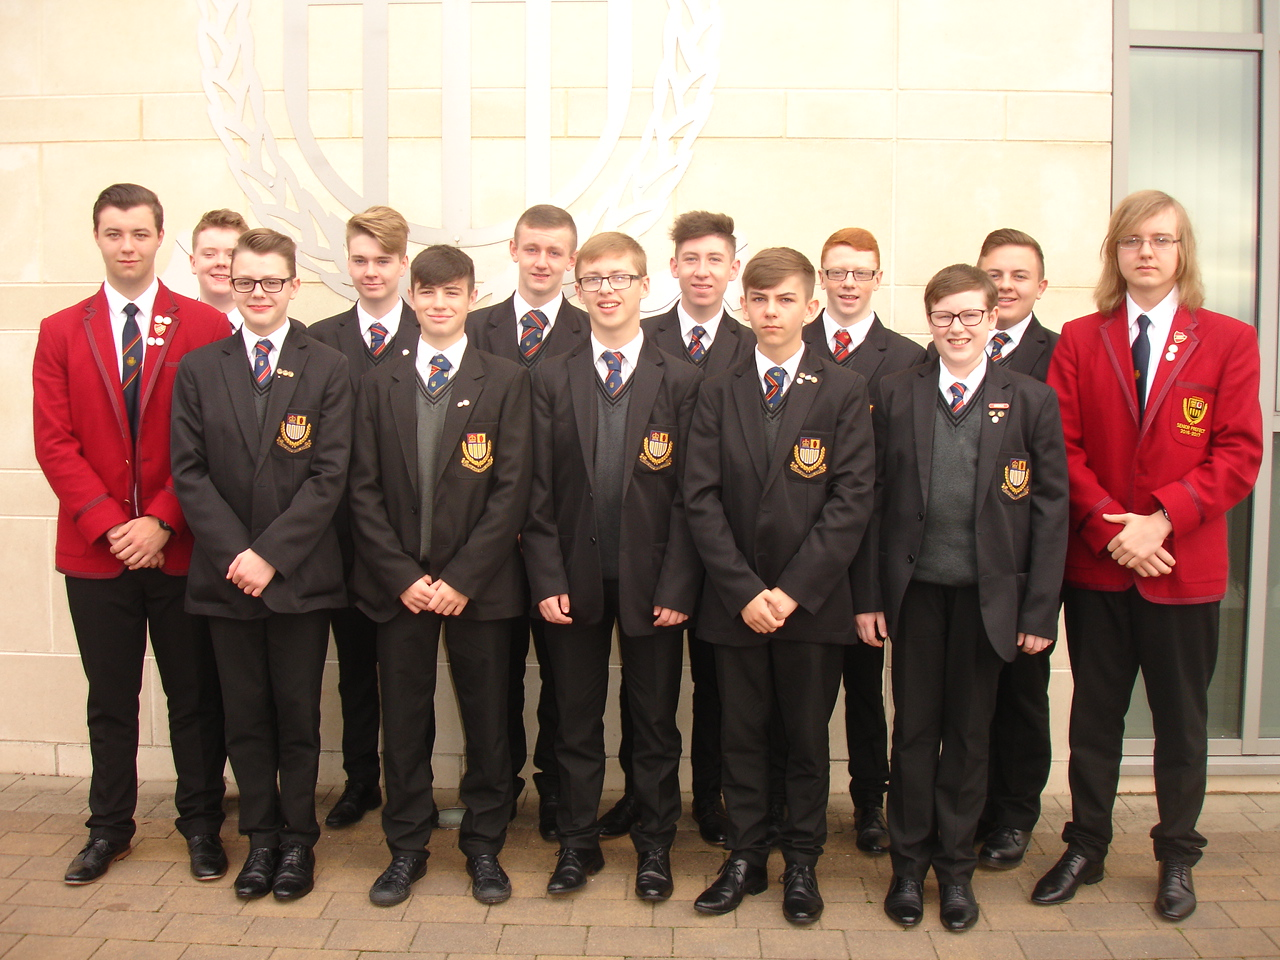 Eighteen boys from BBMS took part in this year's Belfast Tattoo